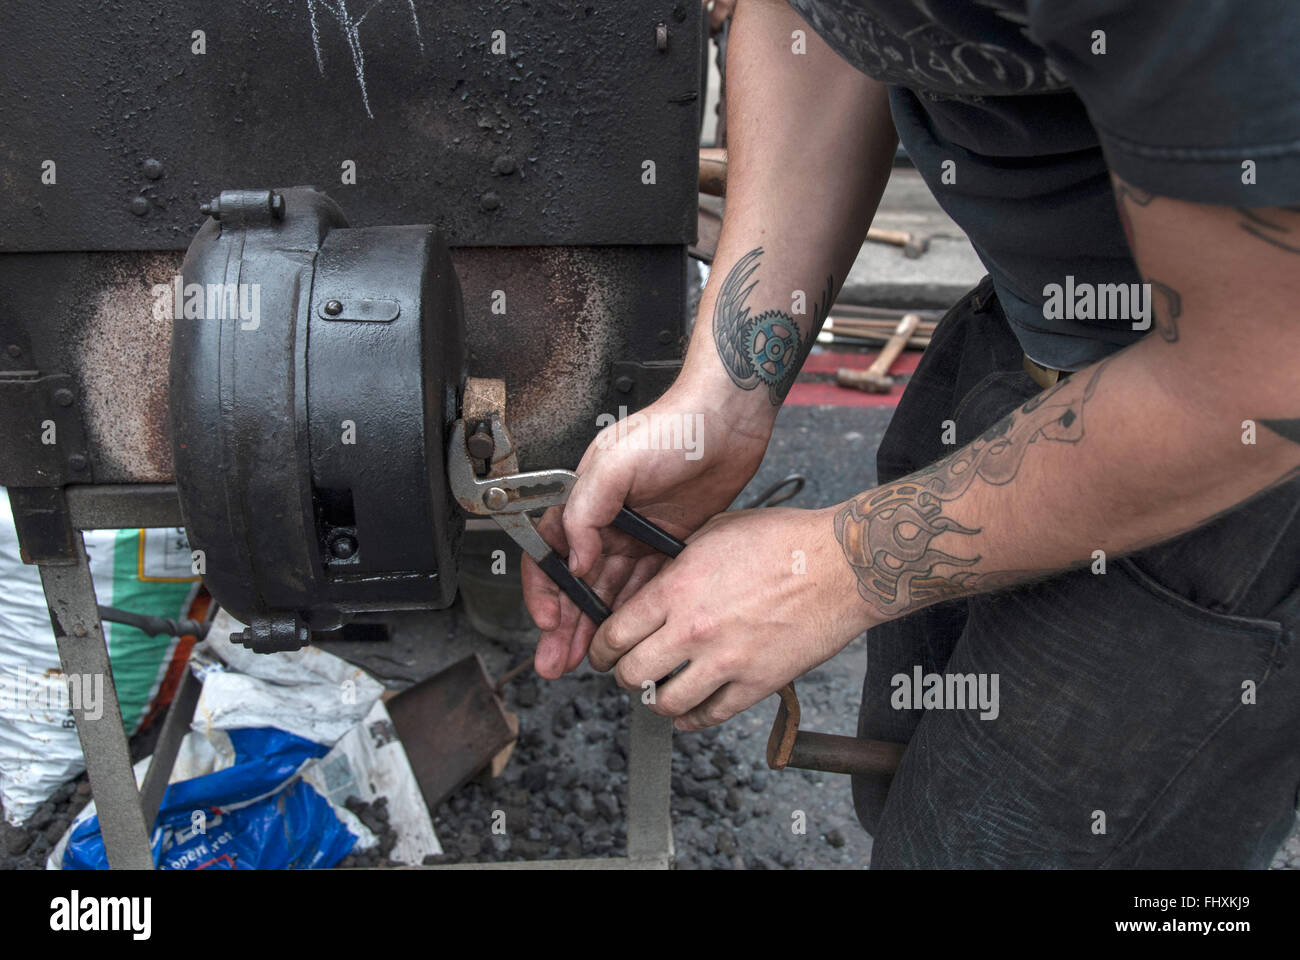 A male laborer tightens the screw on a metal devices - Stock Image